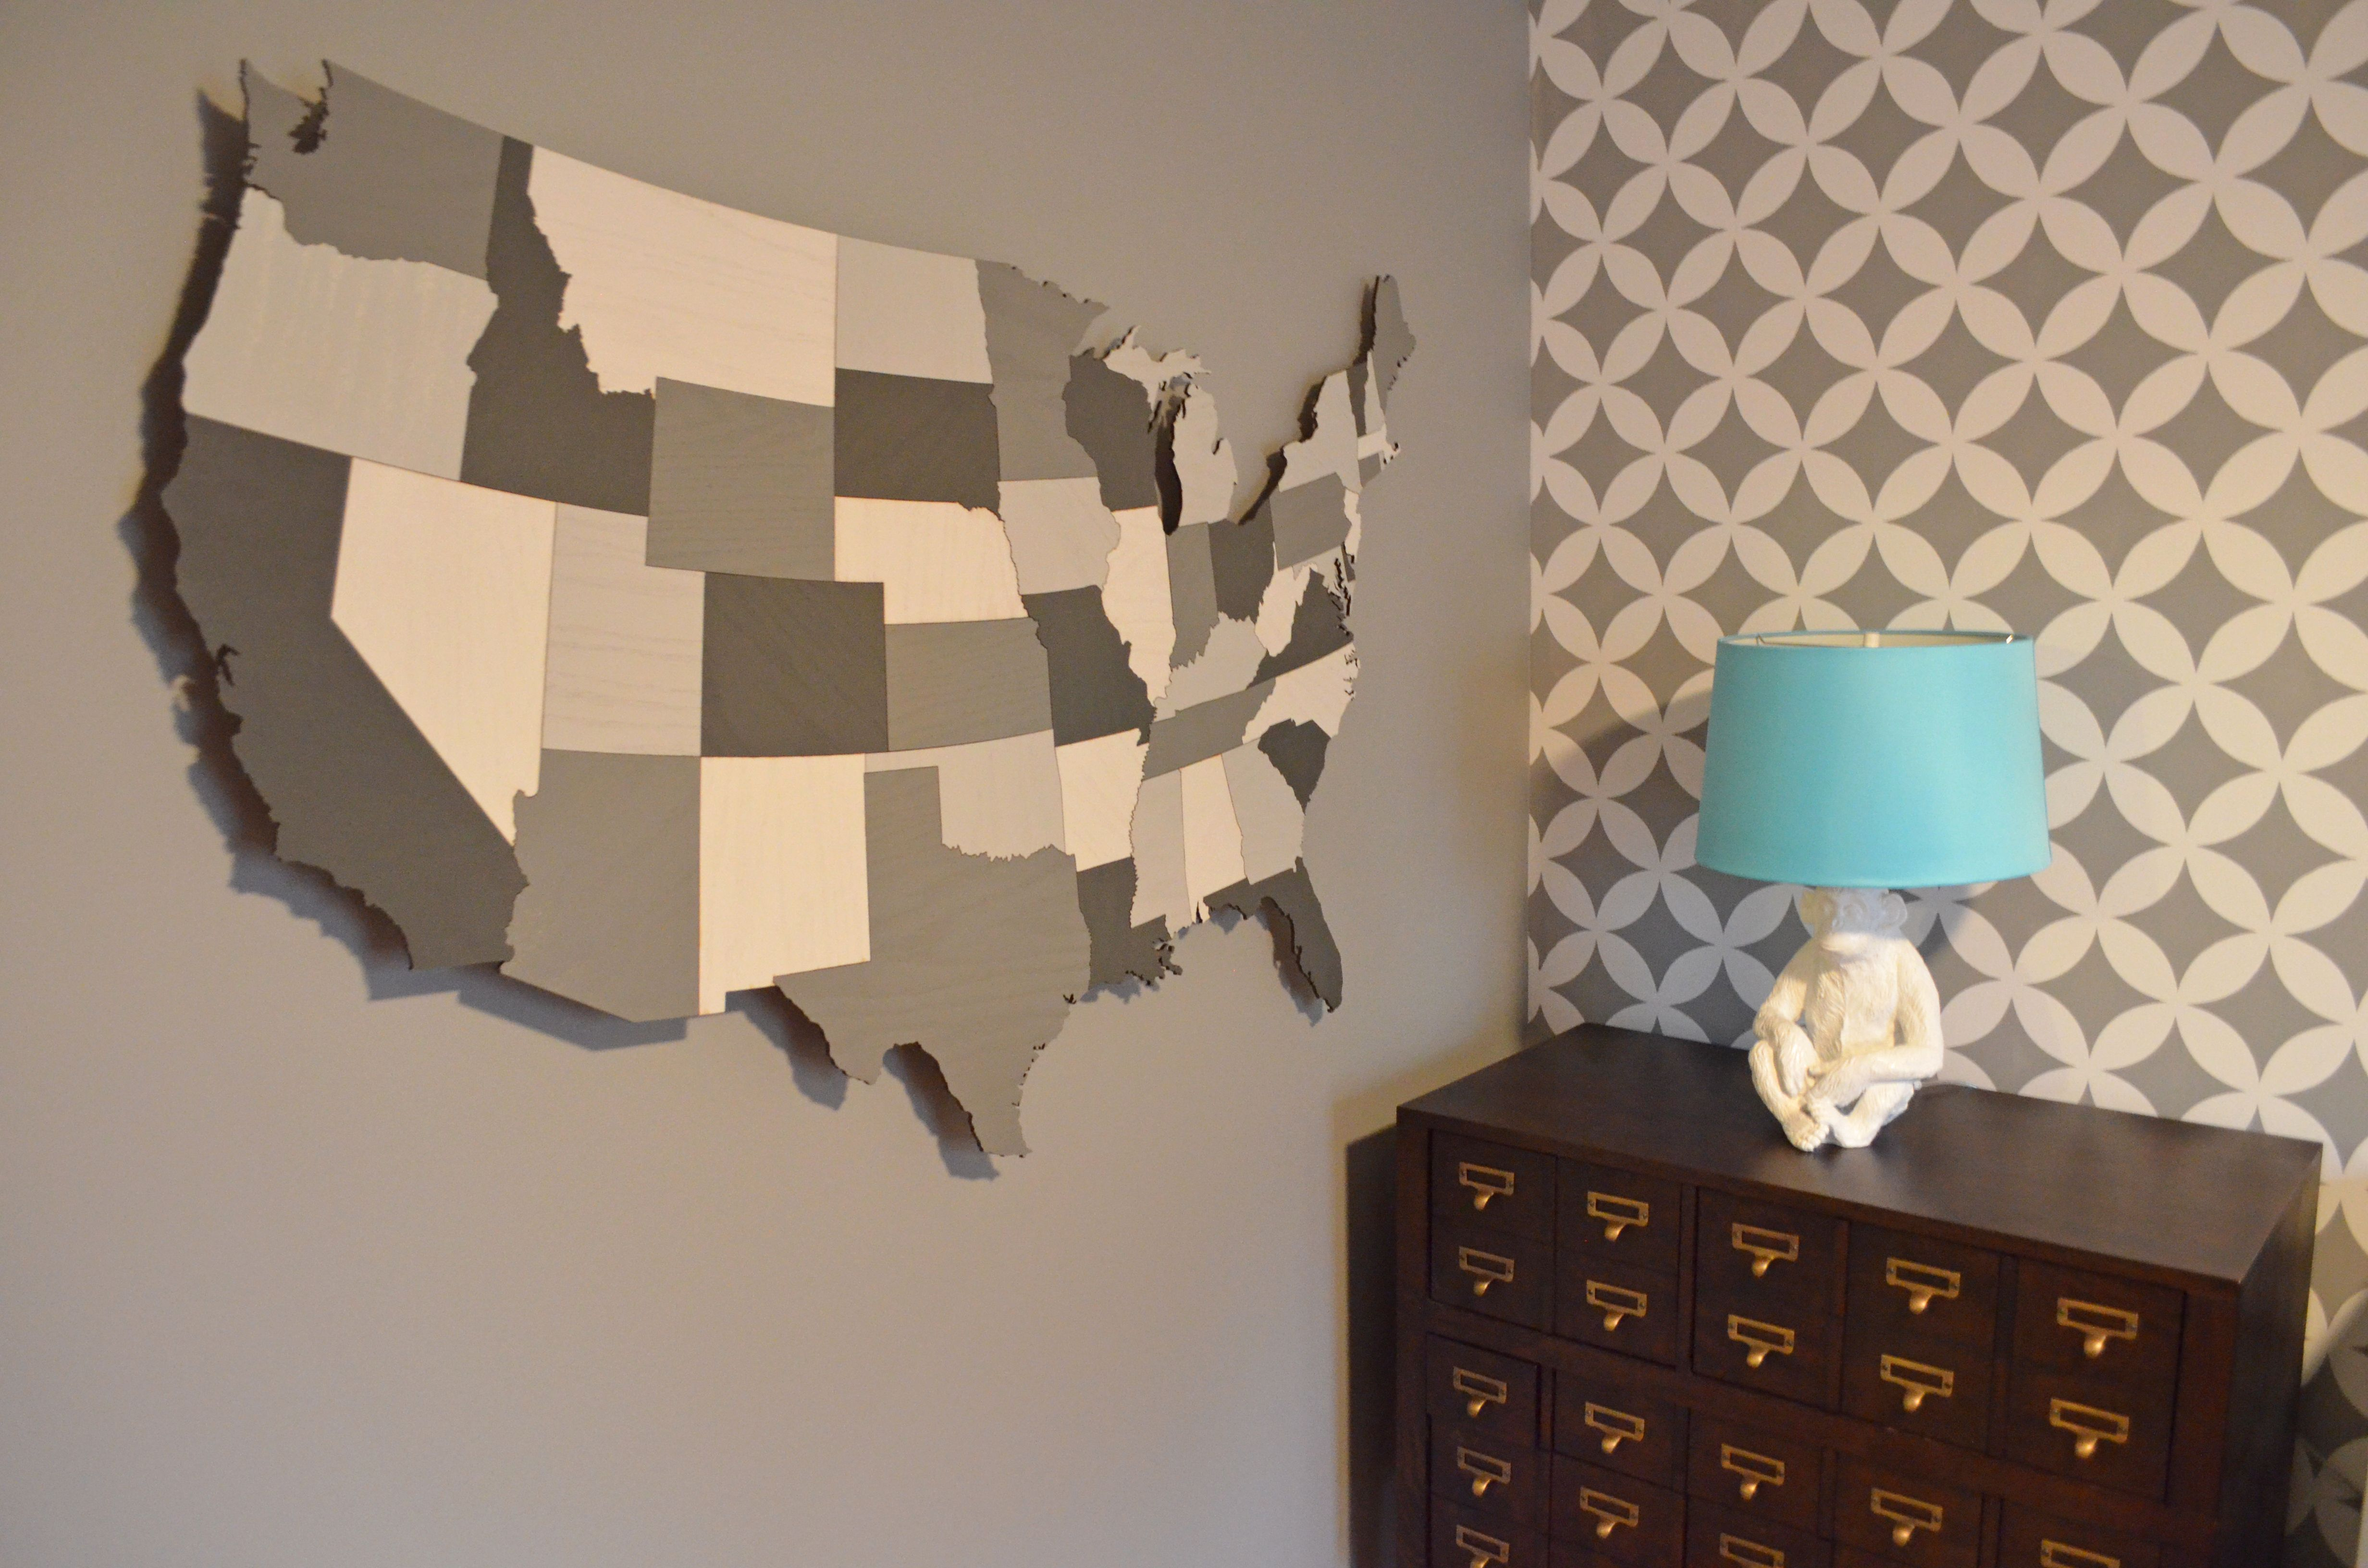 Wooden usa map from mastersoffate on etsy nagoya all over stencil wooden usa map from mastersoffate on etsy nagoya all over stencil from cuttingedgestencils gumiabroncs Choice Image